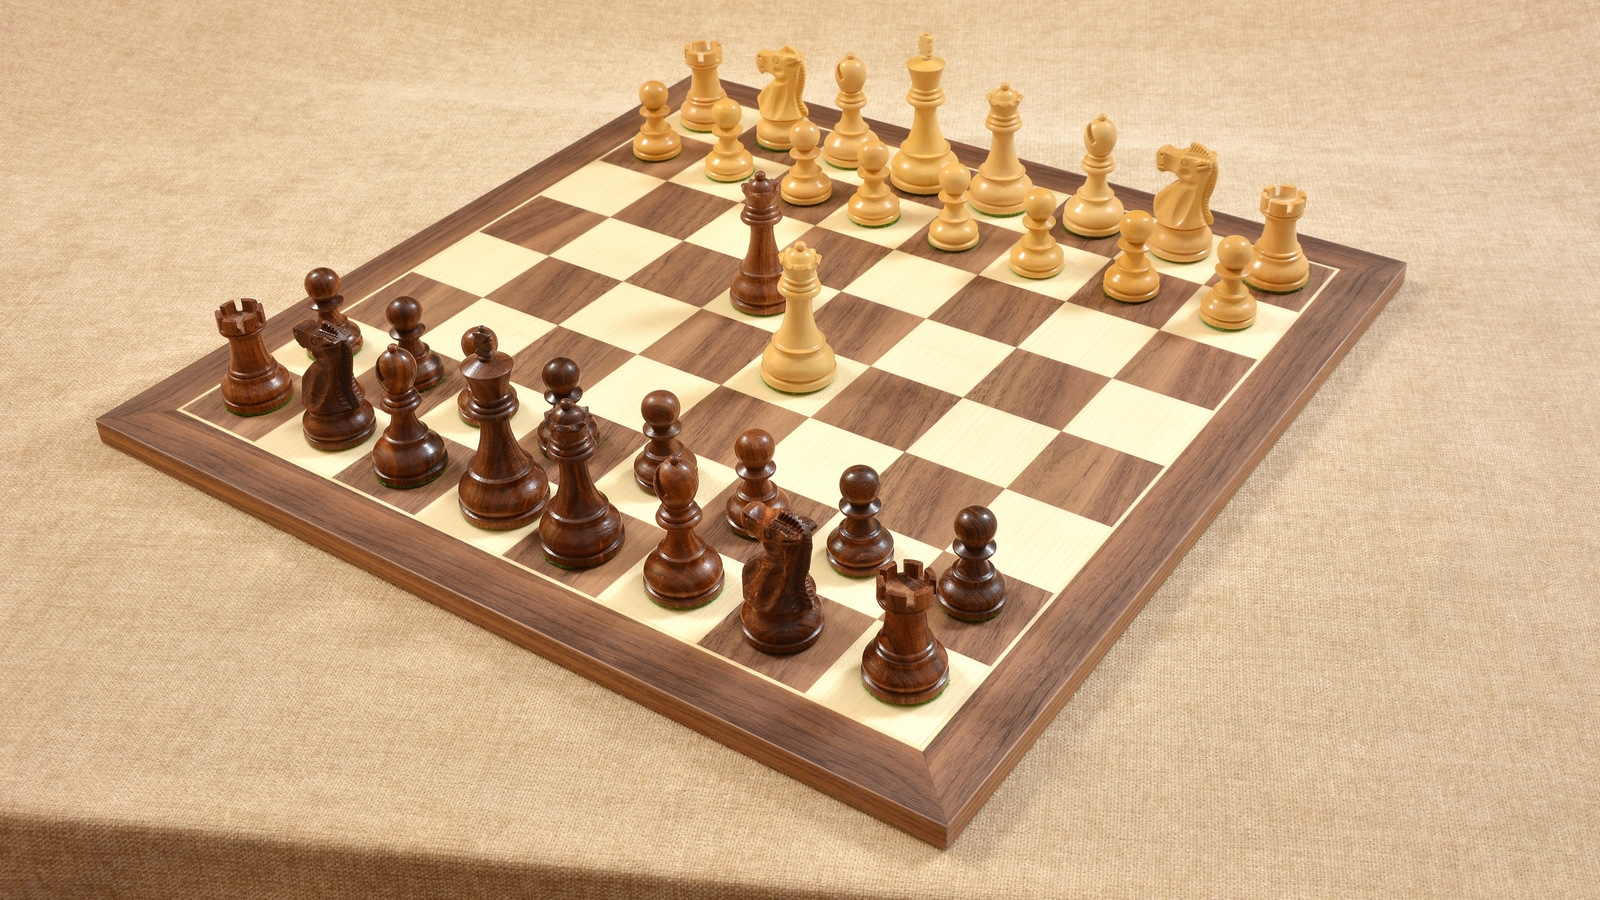 """Combo of Reproduced 1972 Reykjavik Staunton Chess Pieces & Walnut Maple Chessboard - 3.7"""""""